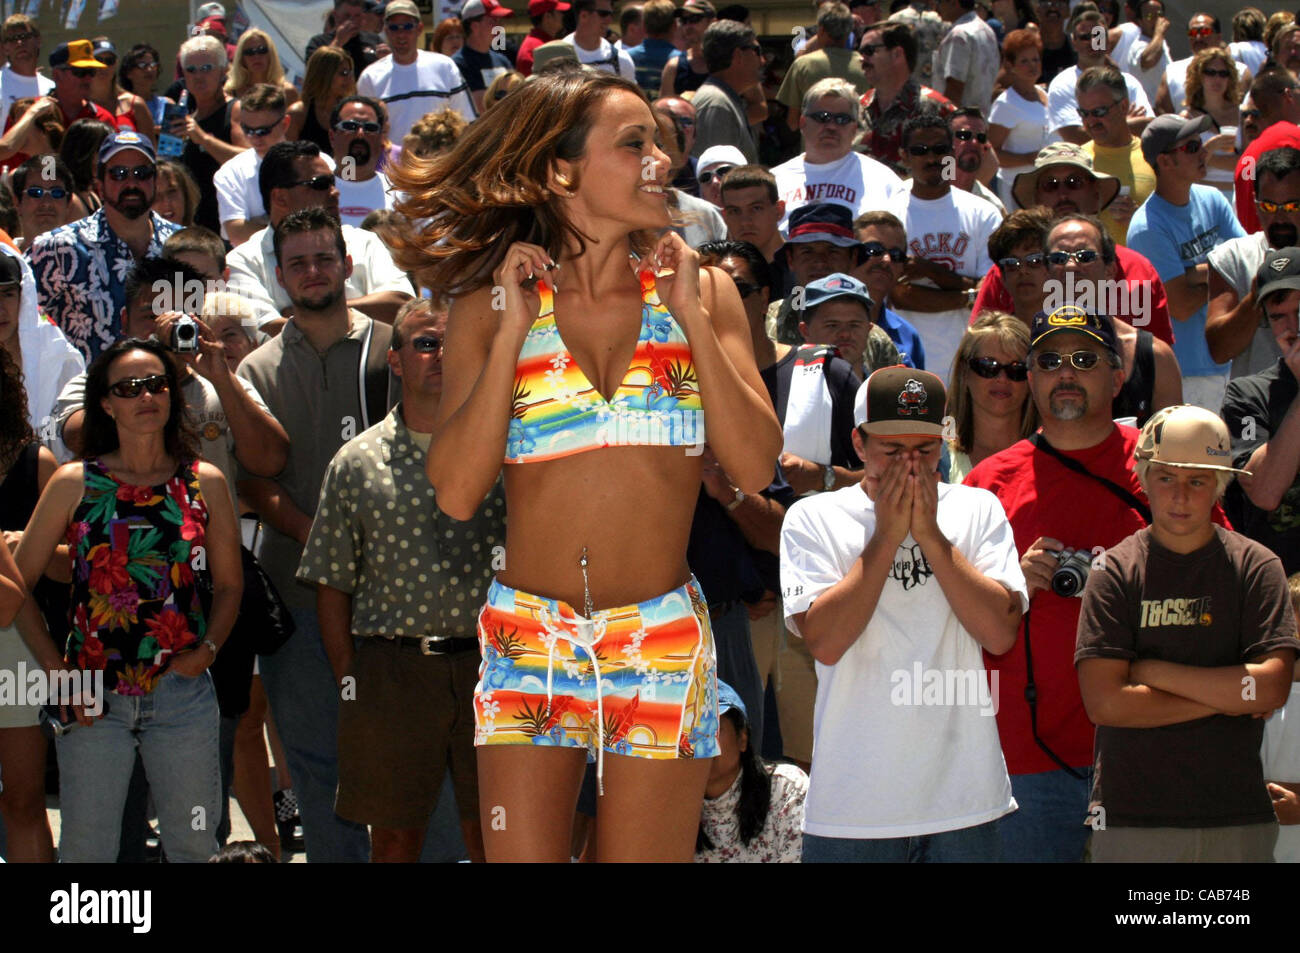 89269dd1d Nicole Sharp (cq) models an outfit during the annual Swimsuit Fashion Show  at the